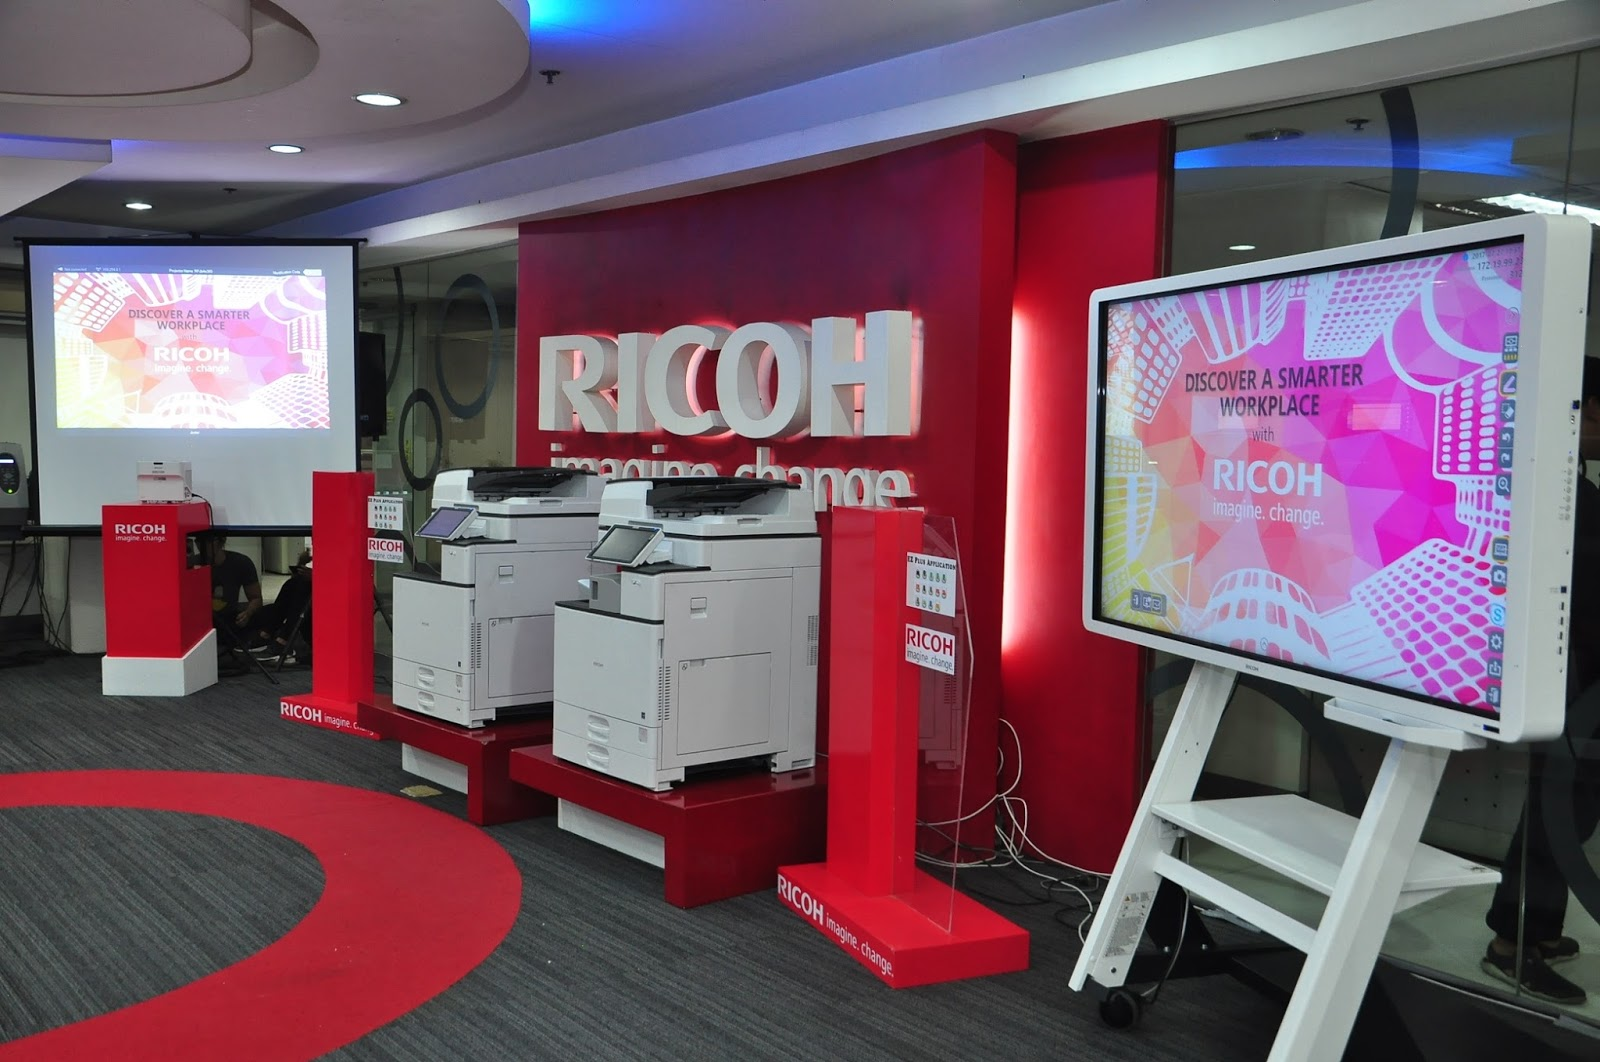 Ricoh philippines offers total office productivity solutions to last thursday july 27 2017 at their office at gil puyat makati ricoh philippines a global leader in office productivity solutions recognizes that the fandeluxe Gallery